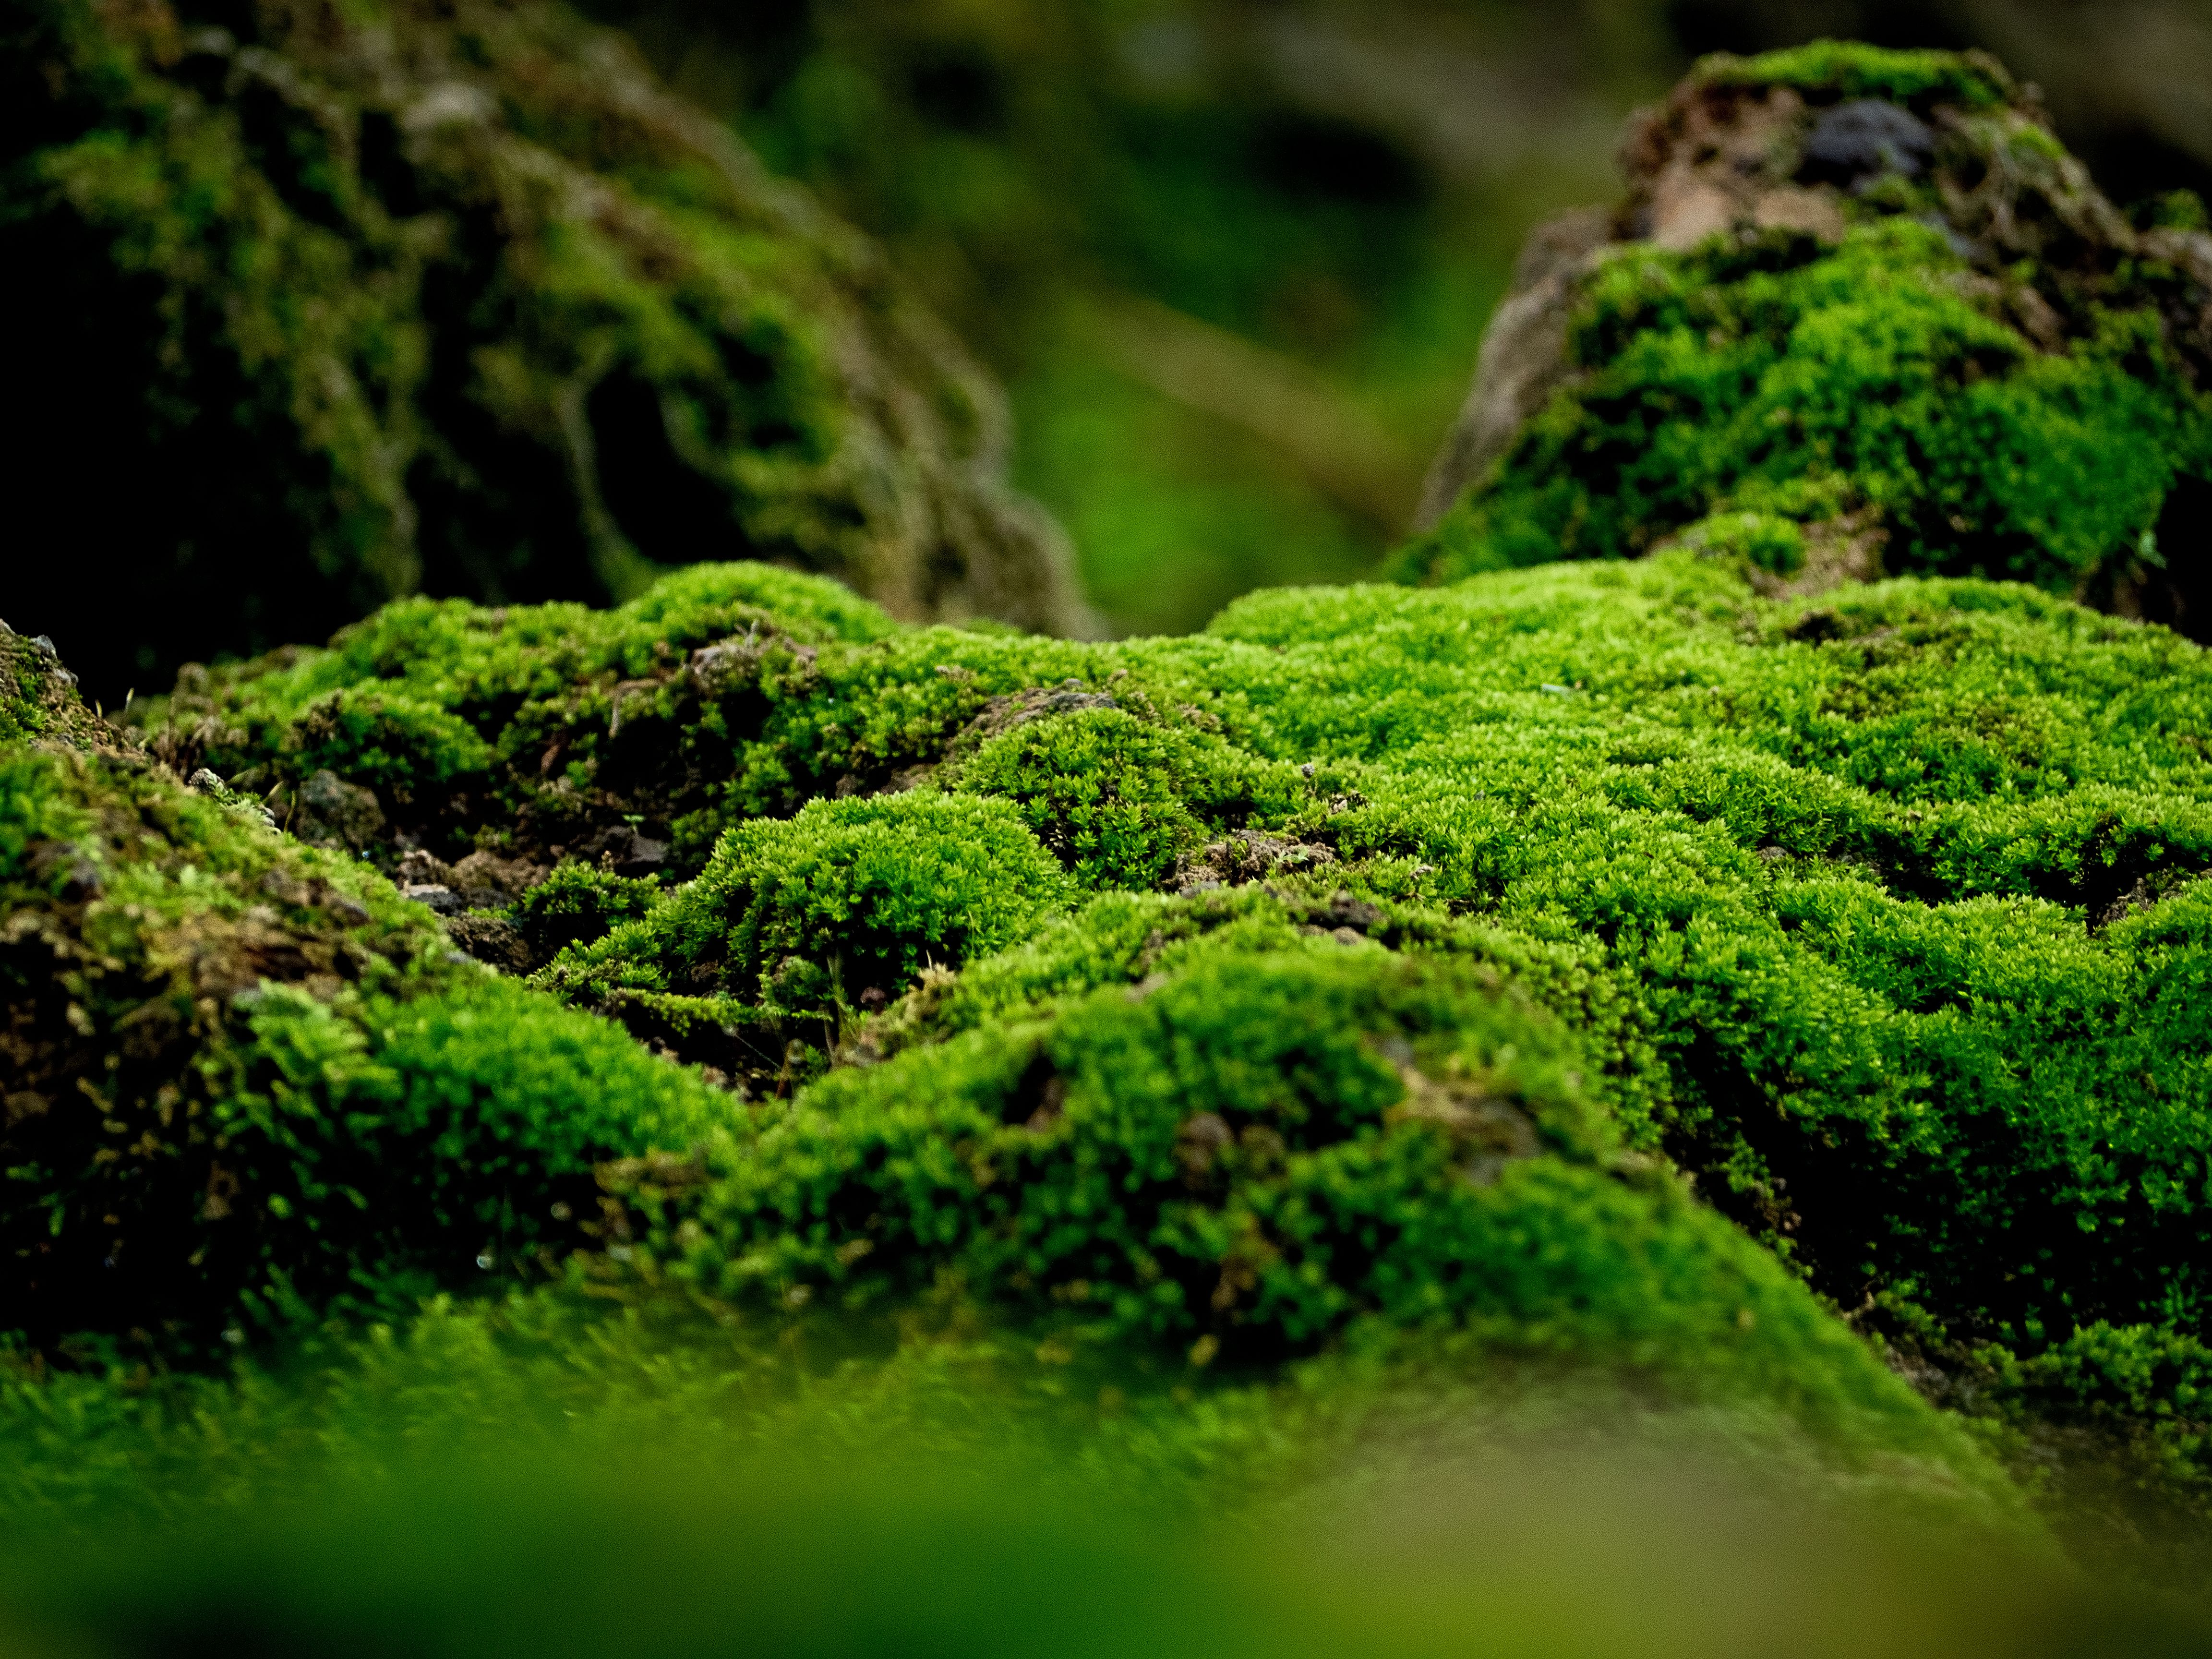 Moss in a forest